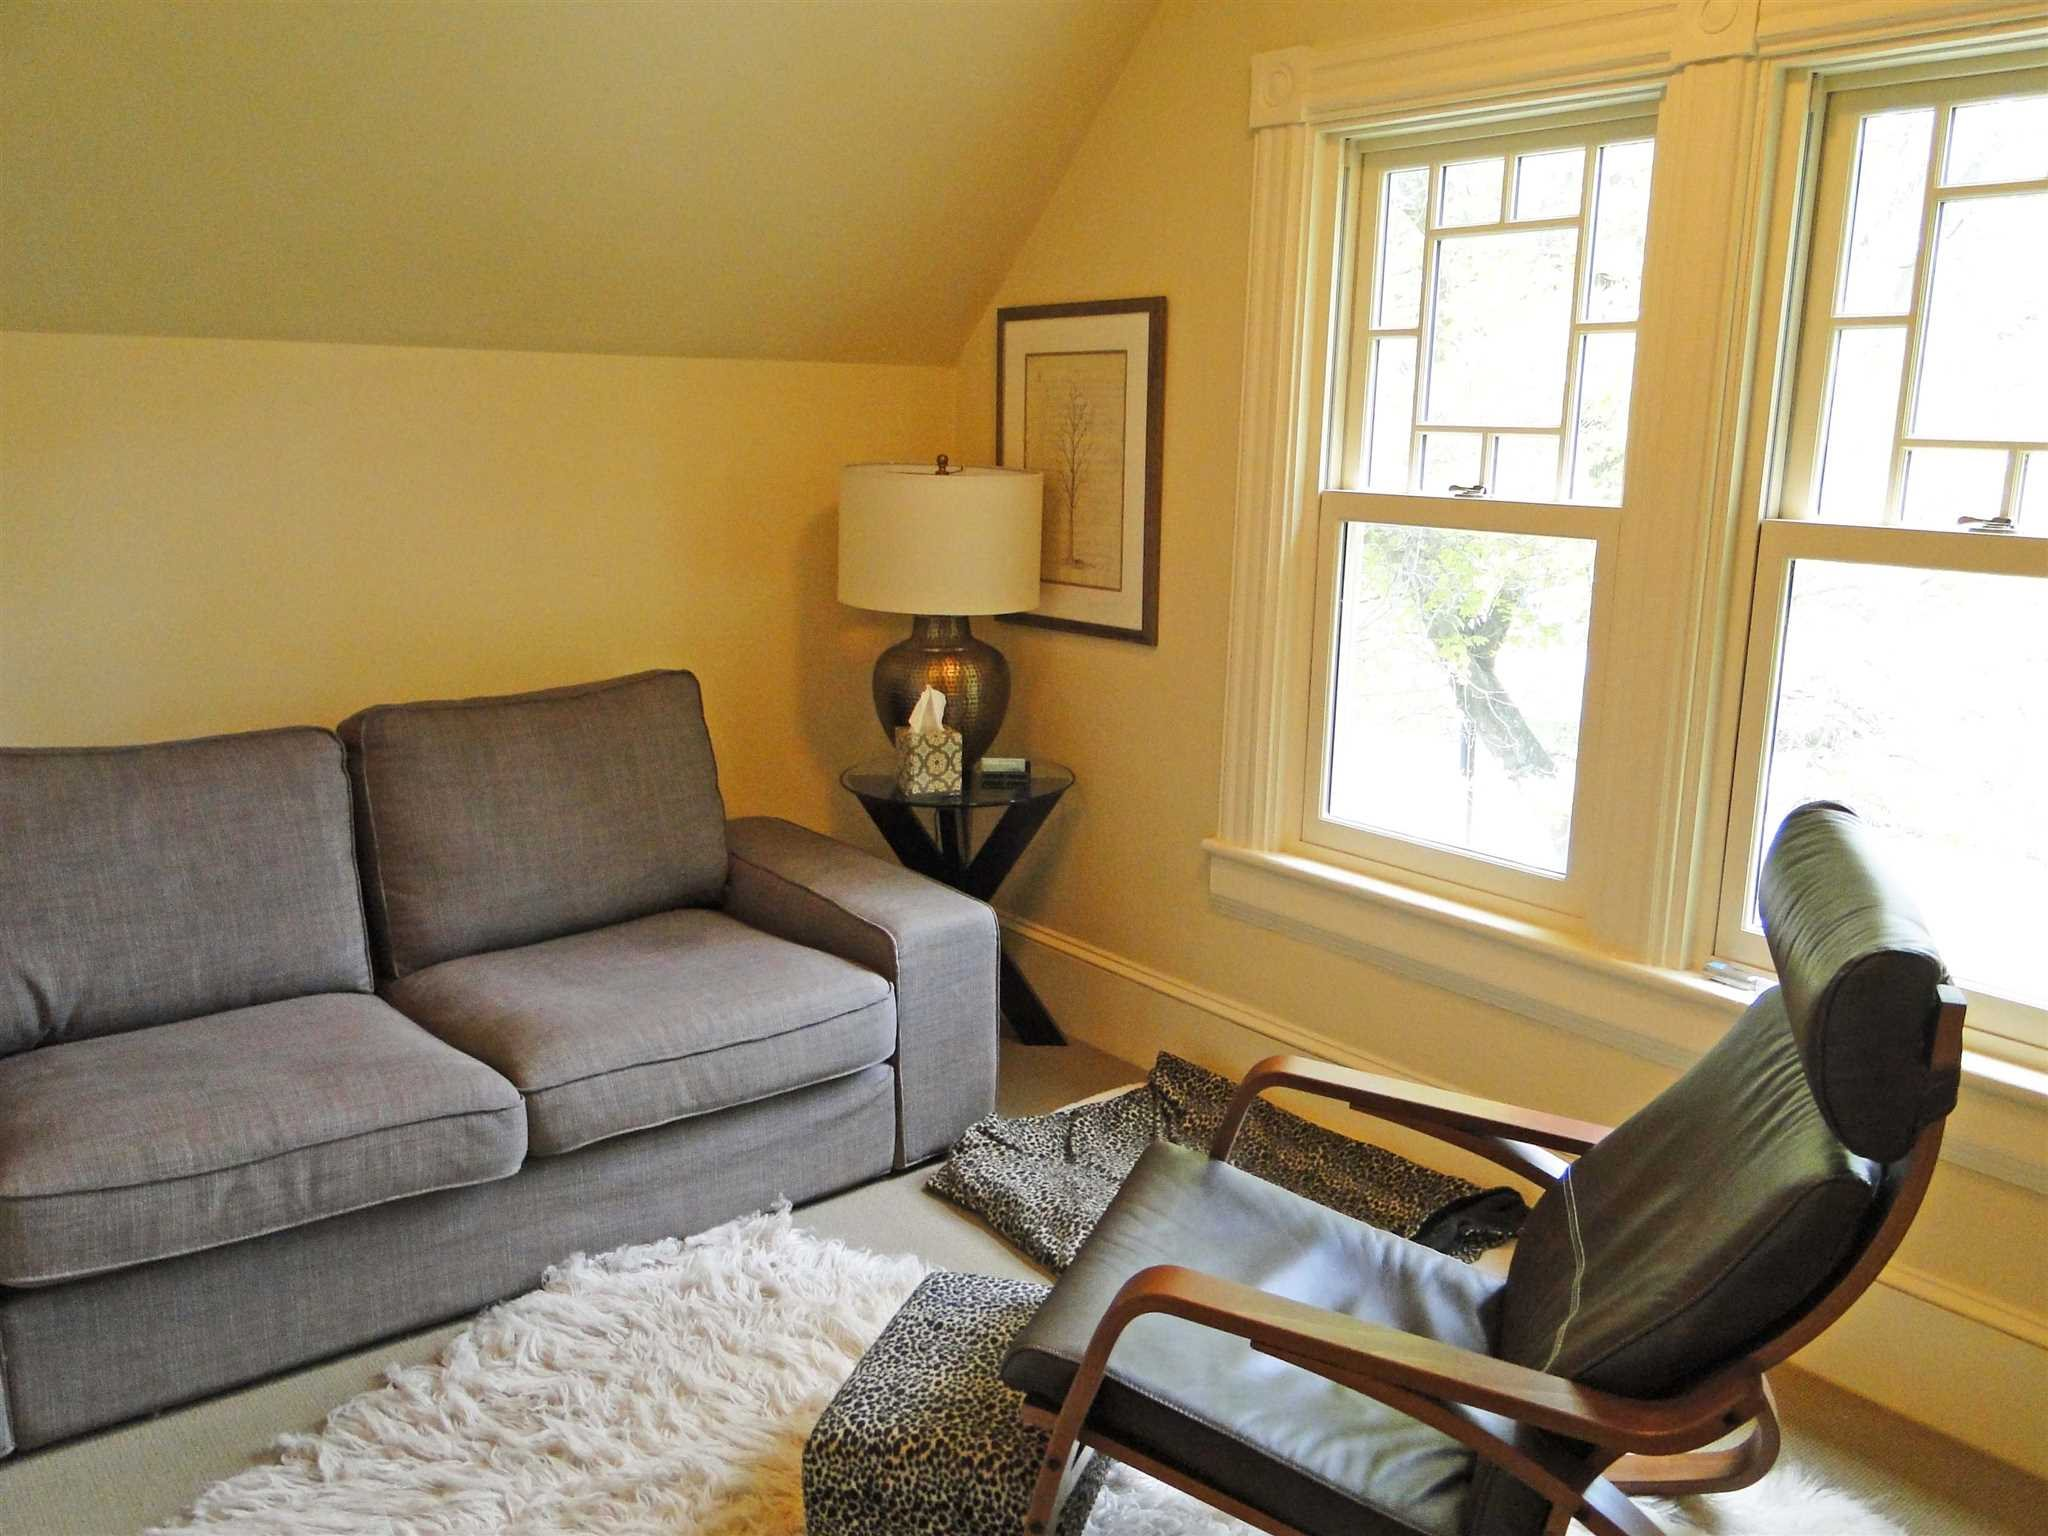 Additional photo for property listing at 160 CHURCH Street 160 CHURCH Street Millbrook, New York 12545 United States